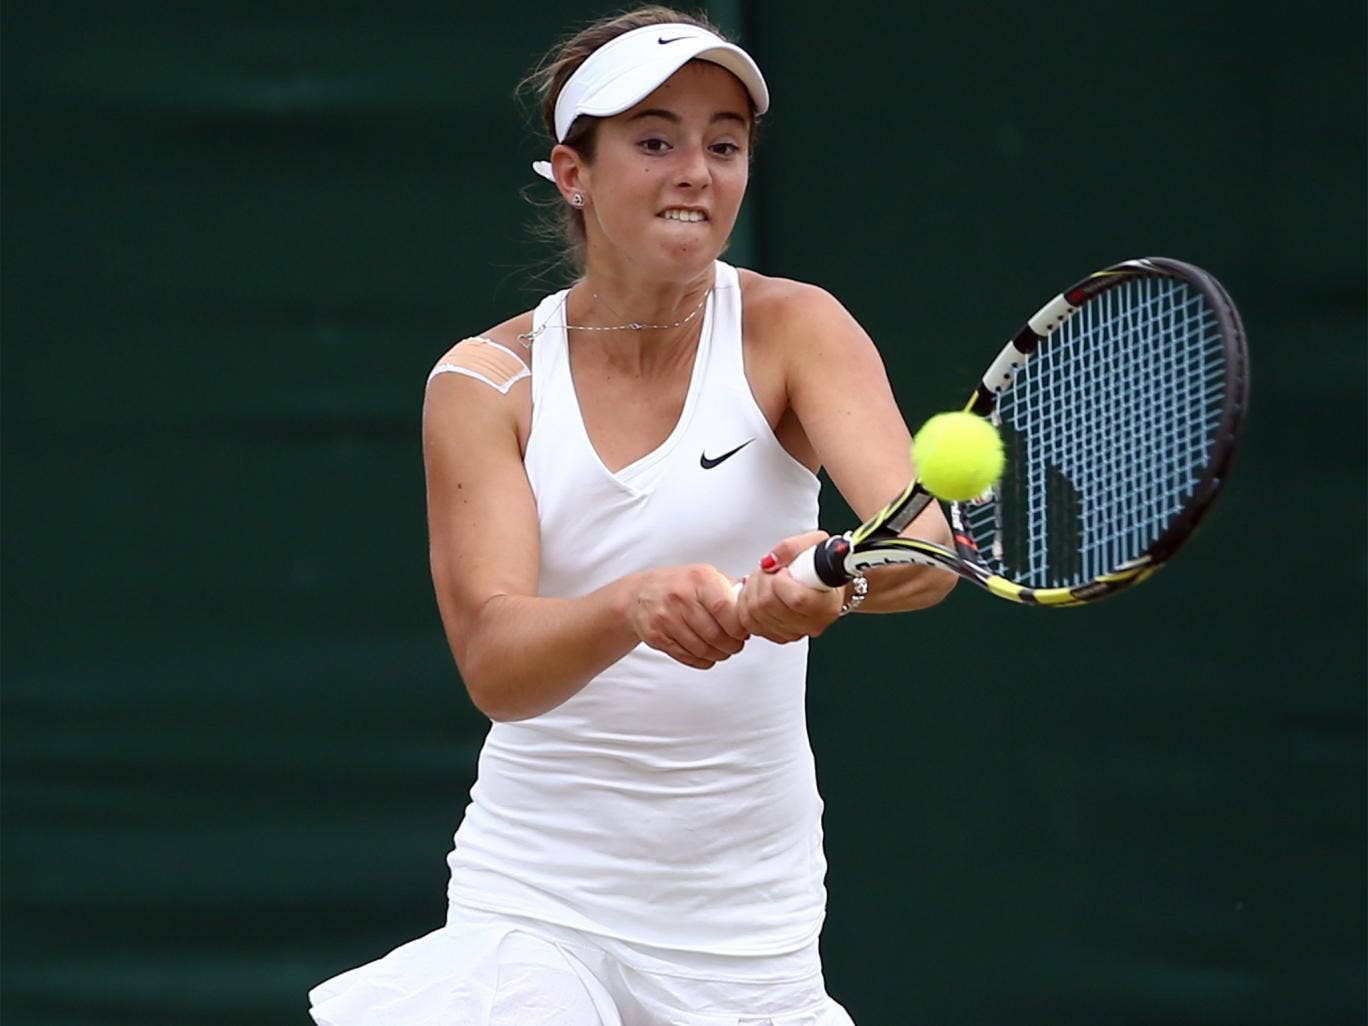 Maia Lumsden is through to the third round of the girls' singles